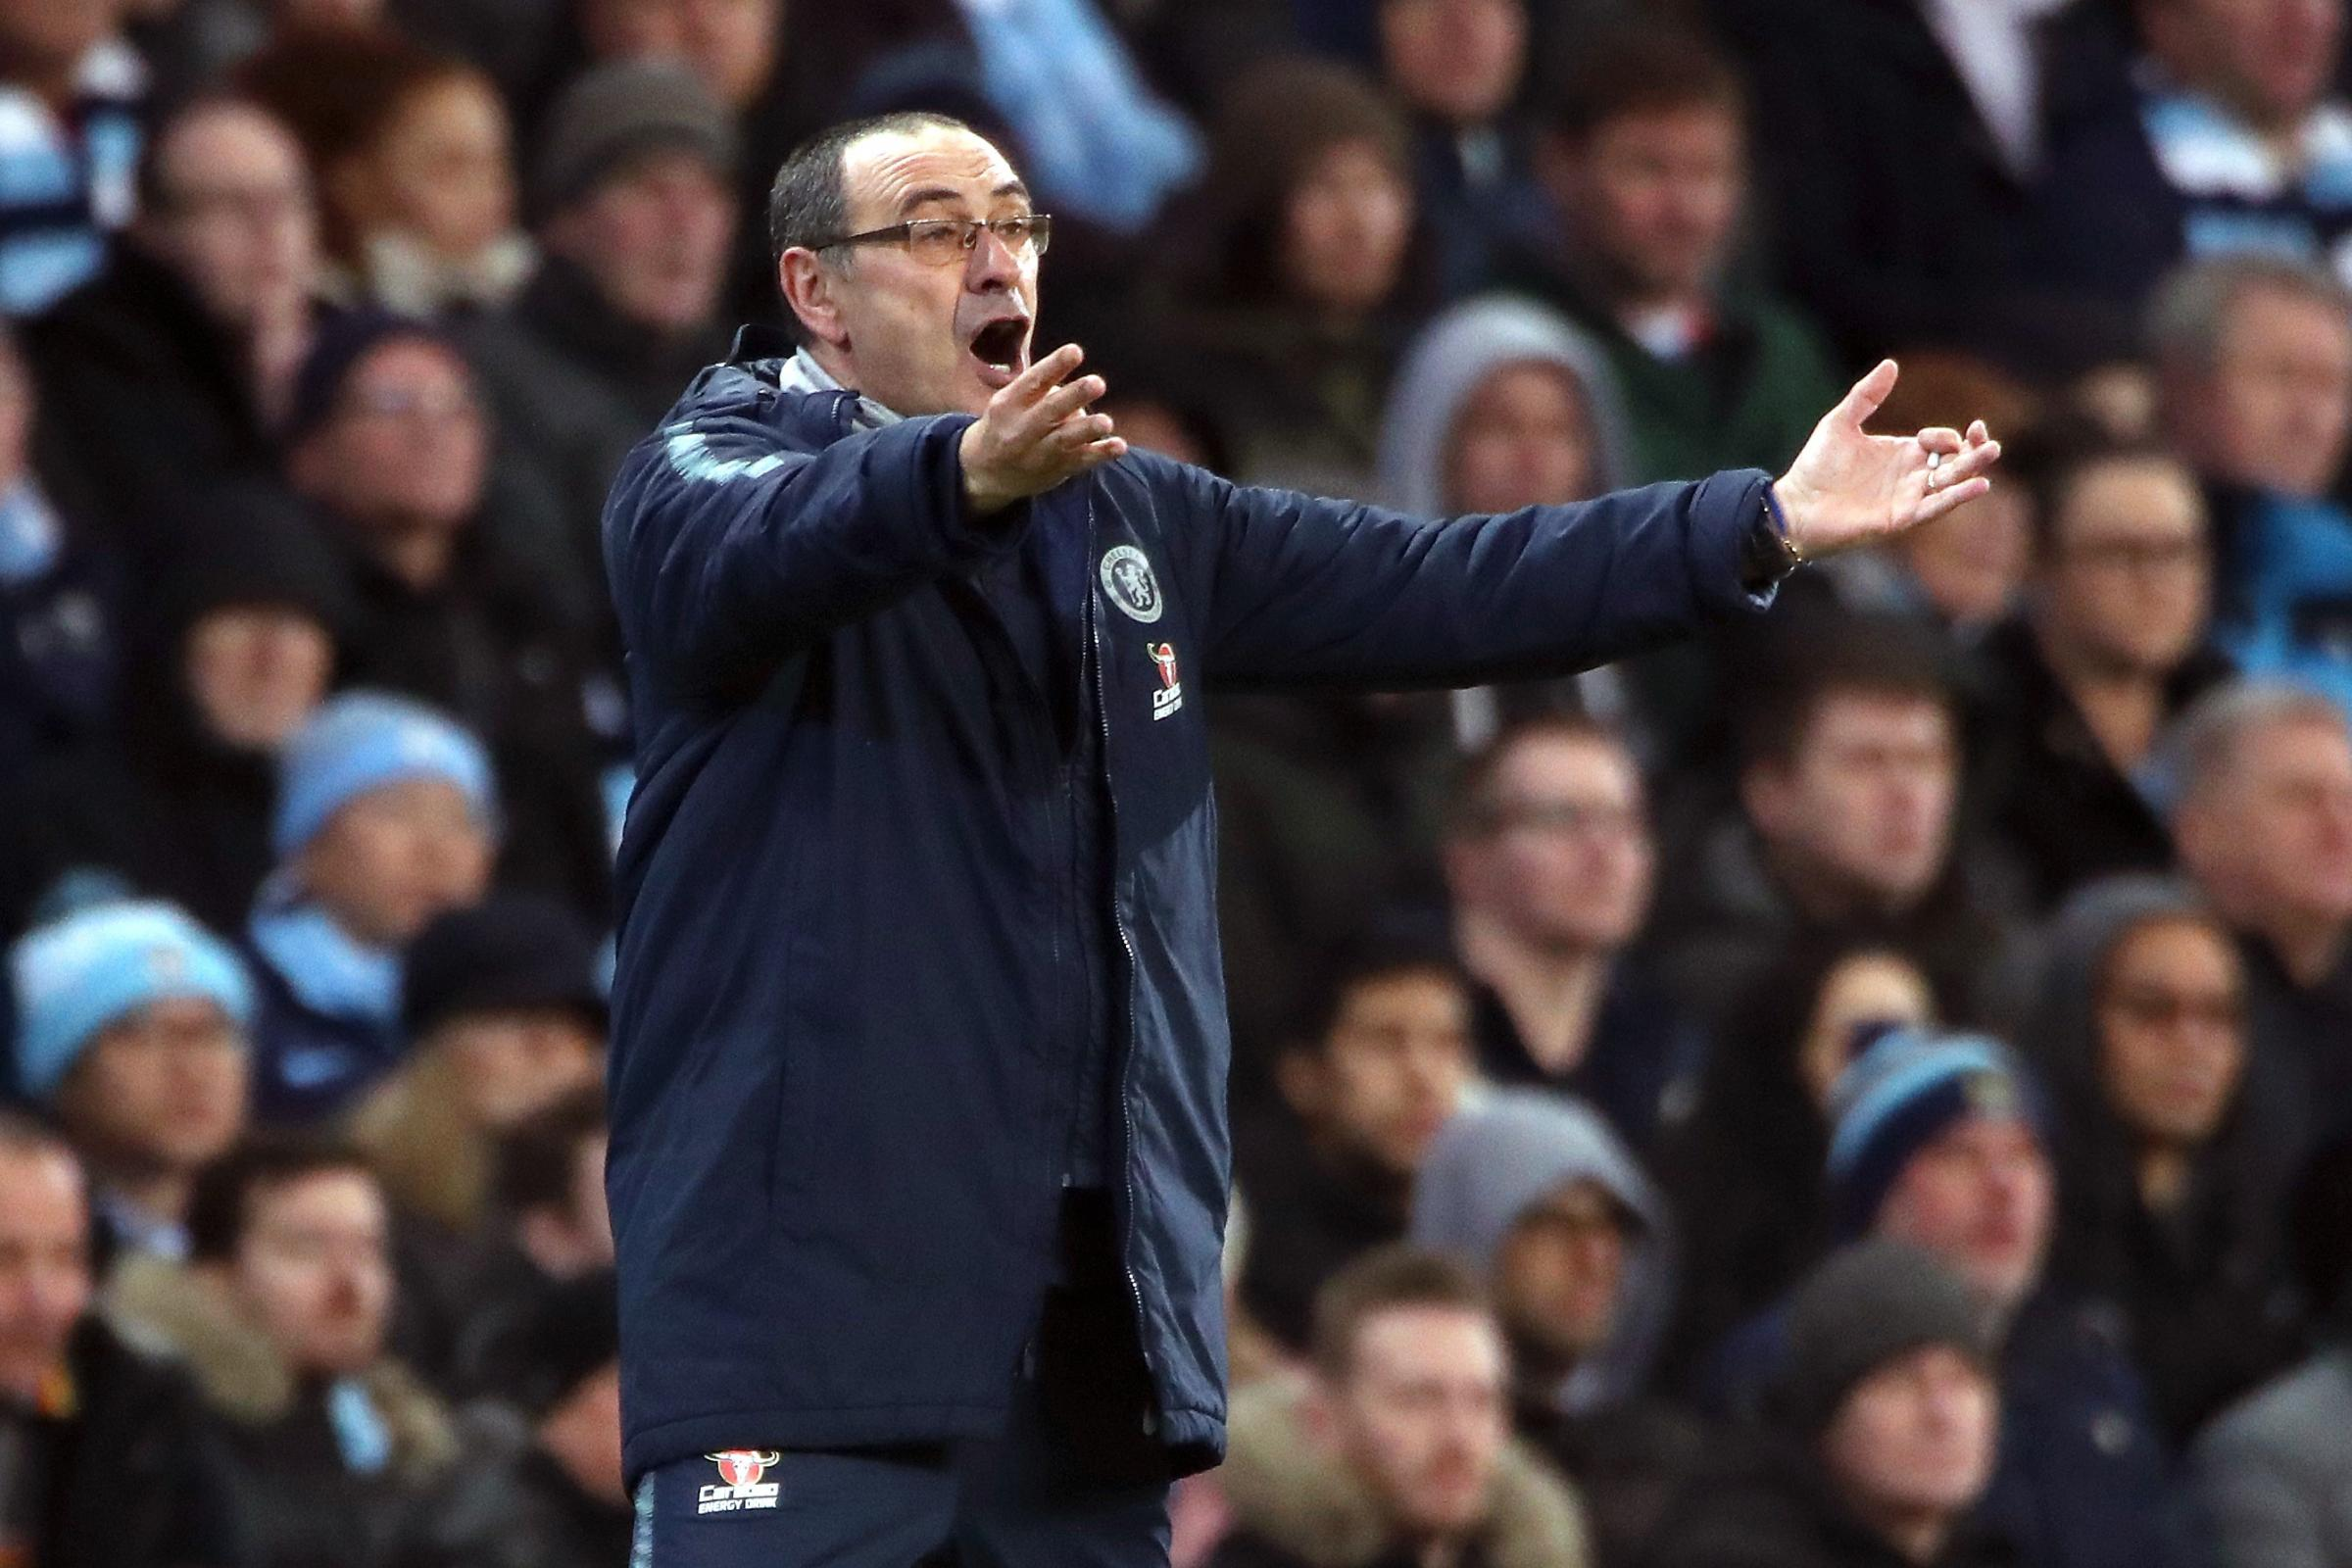 Maurizio Sarri's Chelsea have a poor away record in 2019